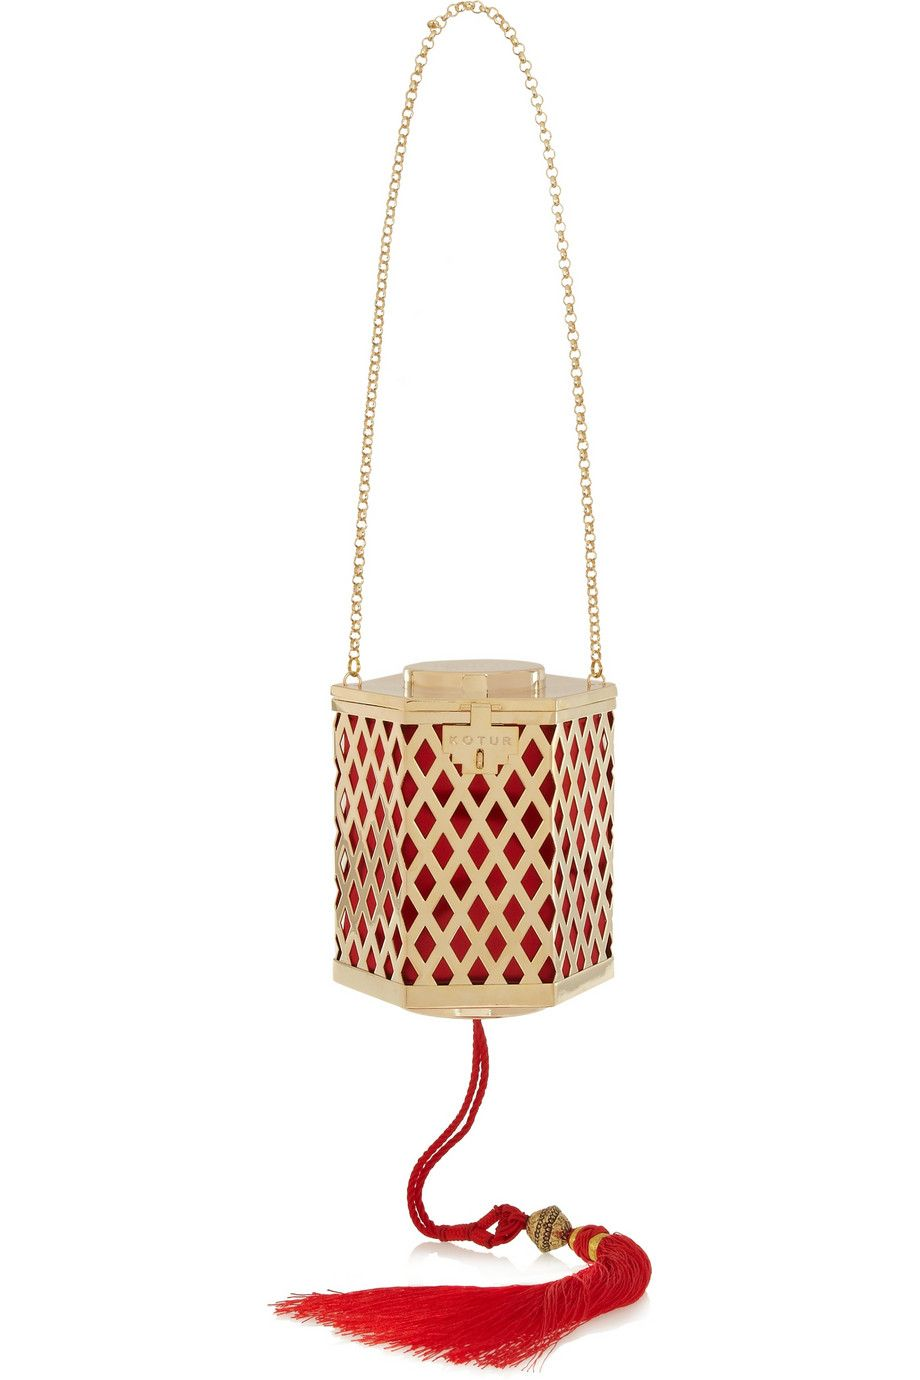 Kotur - Lantern tasseled gold-plated shoulder bag